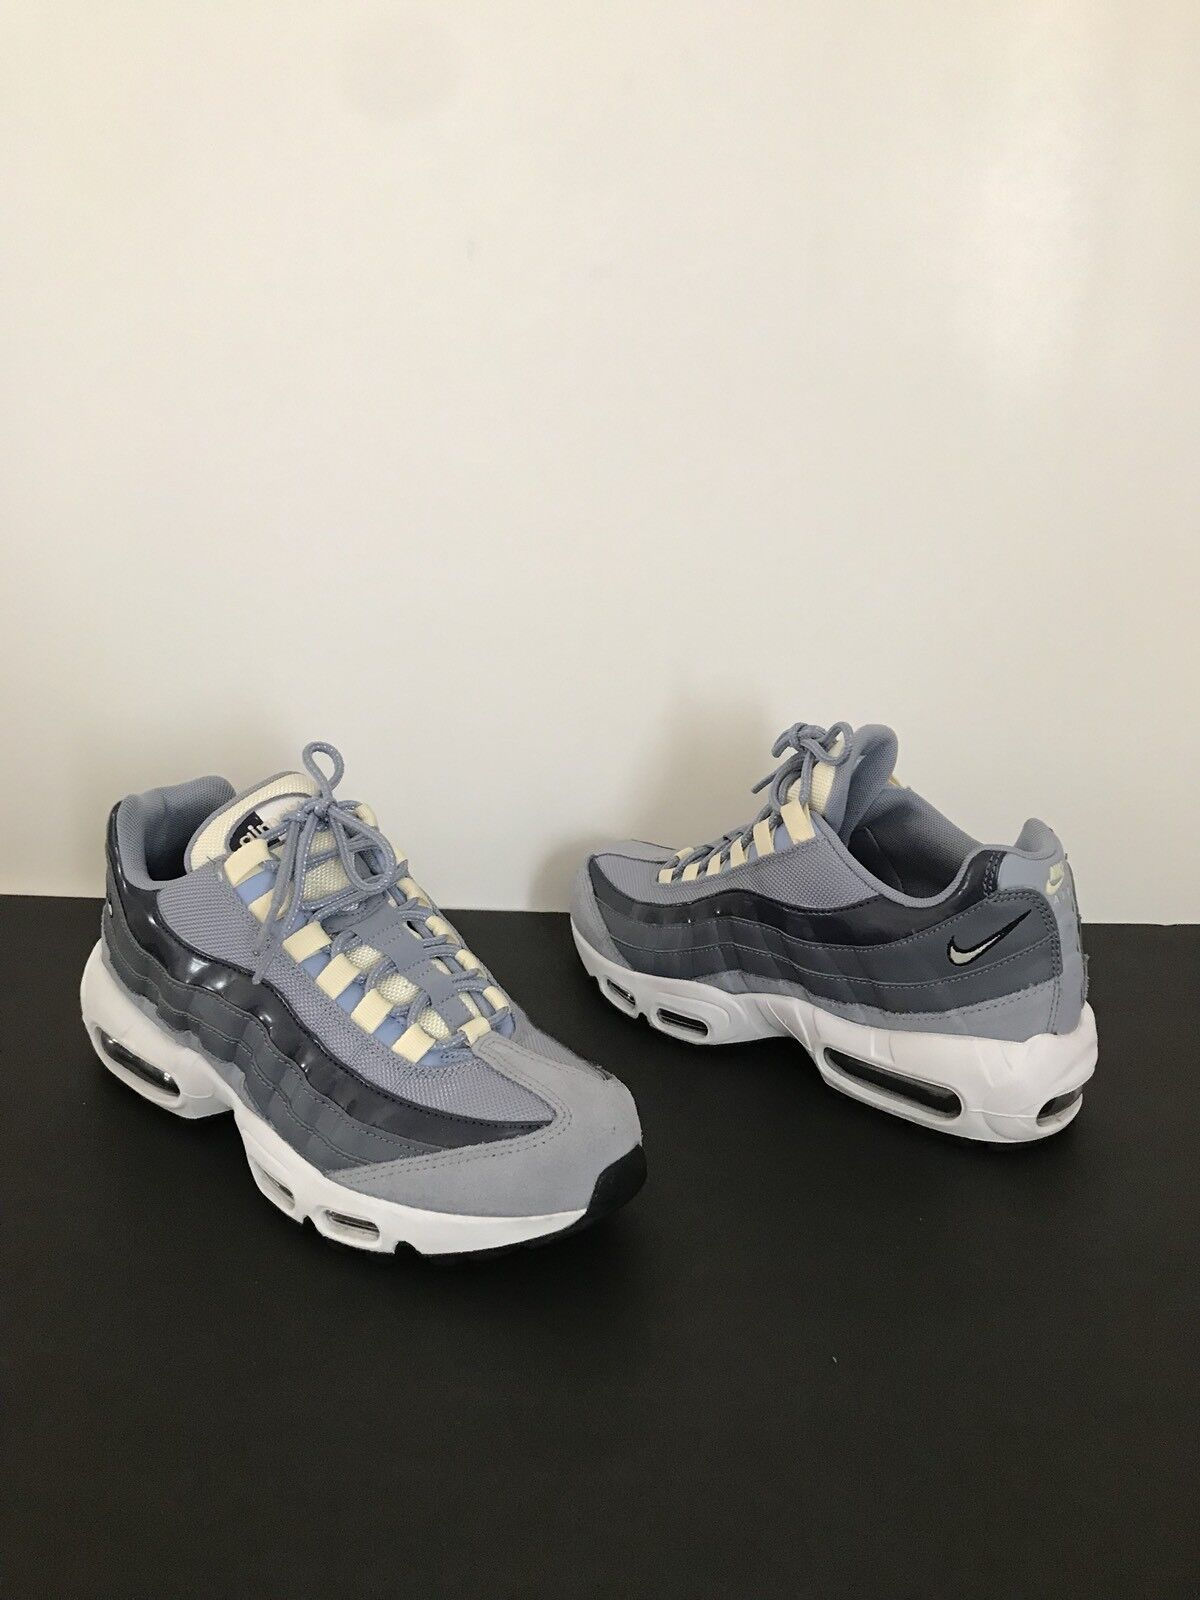 Nike Air Max 95 Running Shoe Glacier Grey/ Muslin Carbon Size 8 1/2